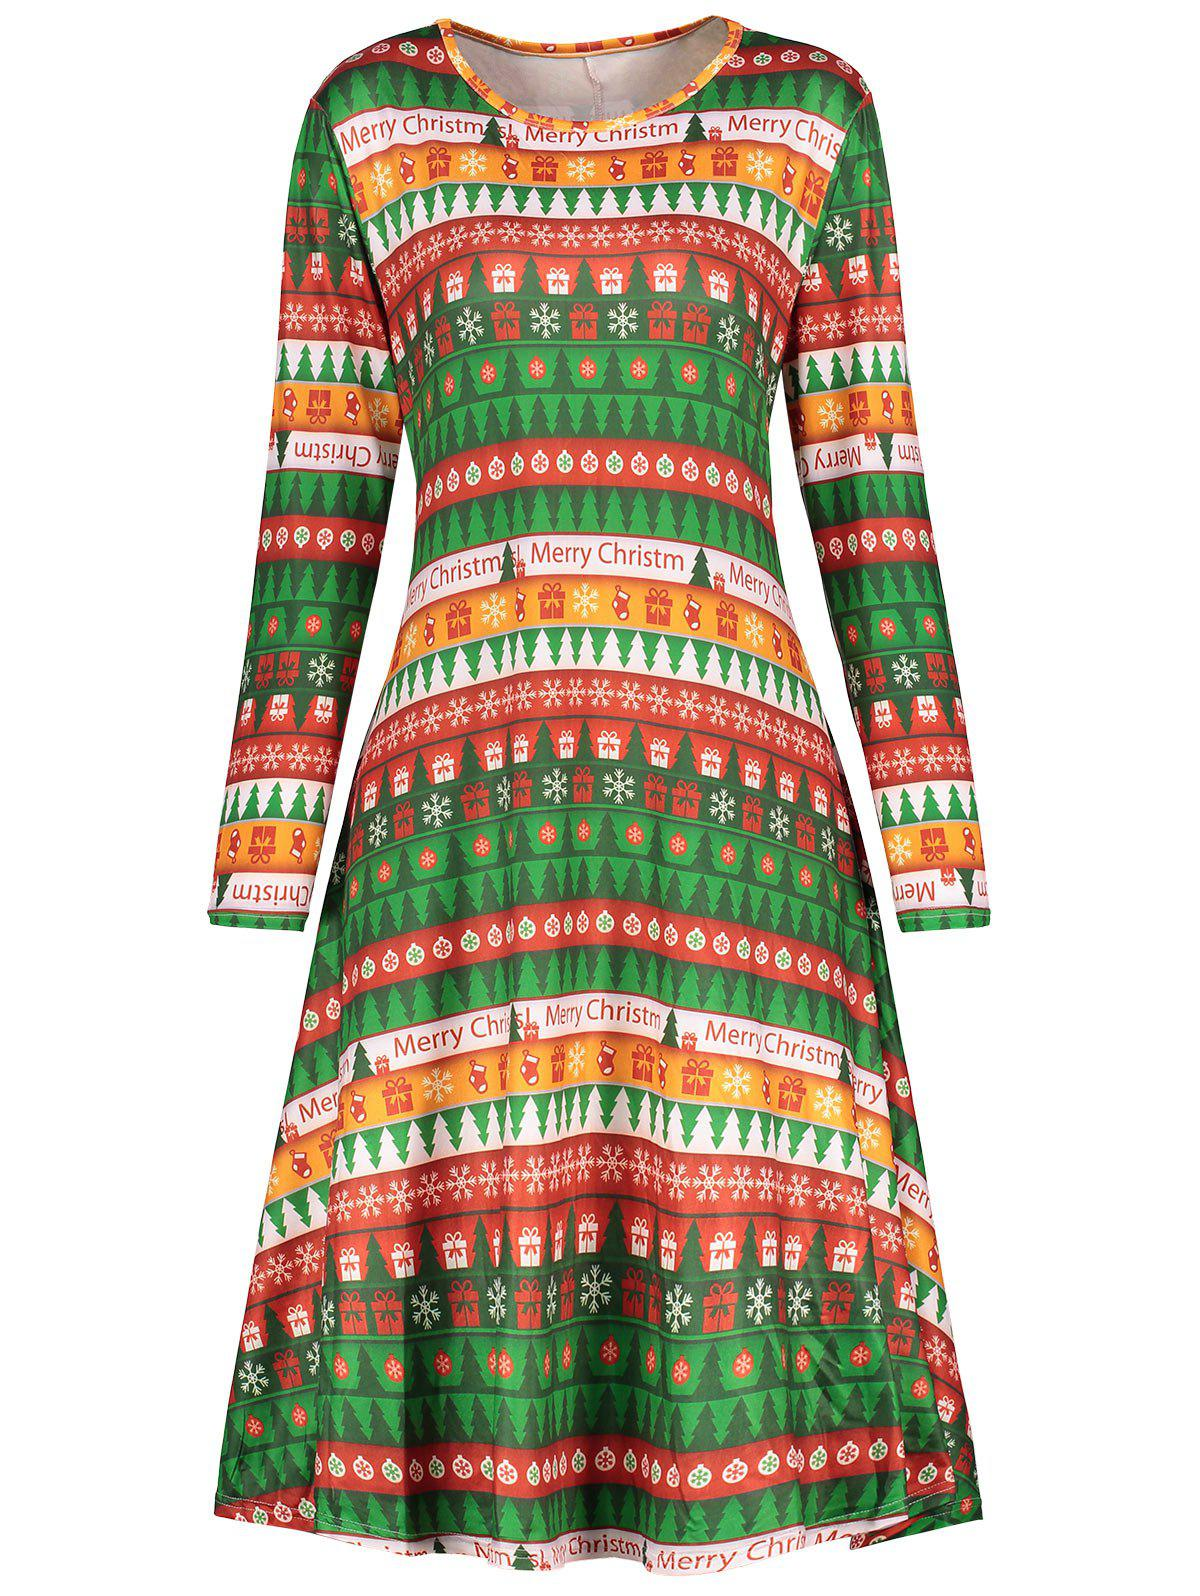 Christmas Plus Size Tree Printed Tee DressWOMEN<br><br>Size: 2XL; Color: GREEN; Style: Casual; Material: Polyester; Silhouette: A-Line; Dresses Length: Mini; Neckline: Round Collar; Sleeve Length: Long Sleeves; Pattern Type: Plant,Print; With Belt: No; Season: Fall,Winter; Weight: 0.3600kg; Package Contents: 1 x Dress;